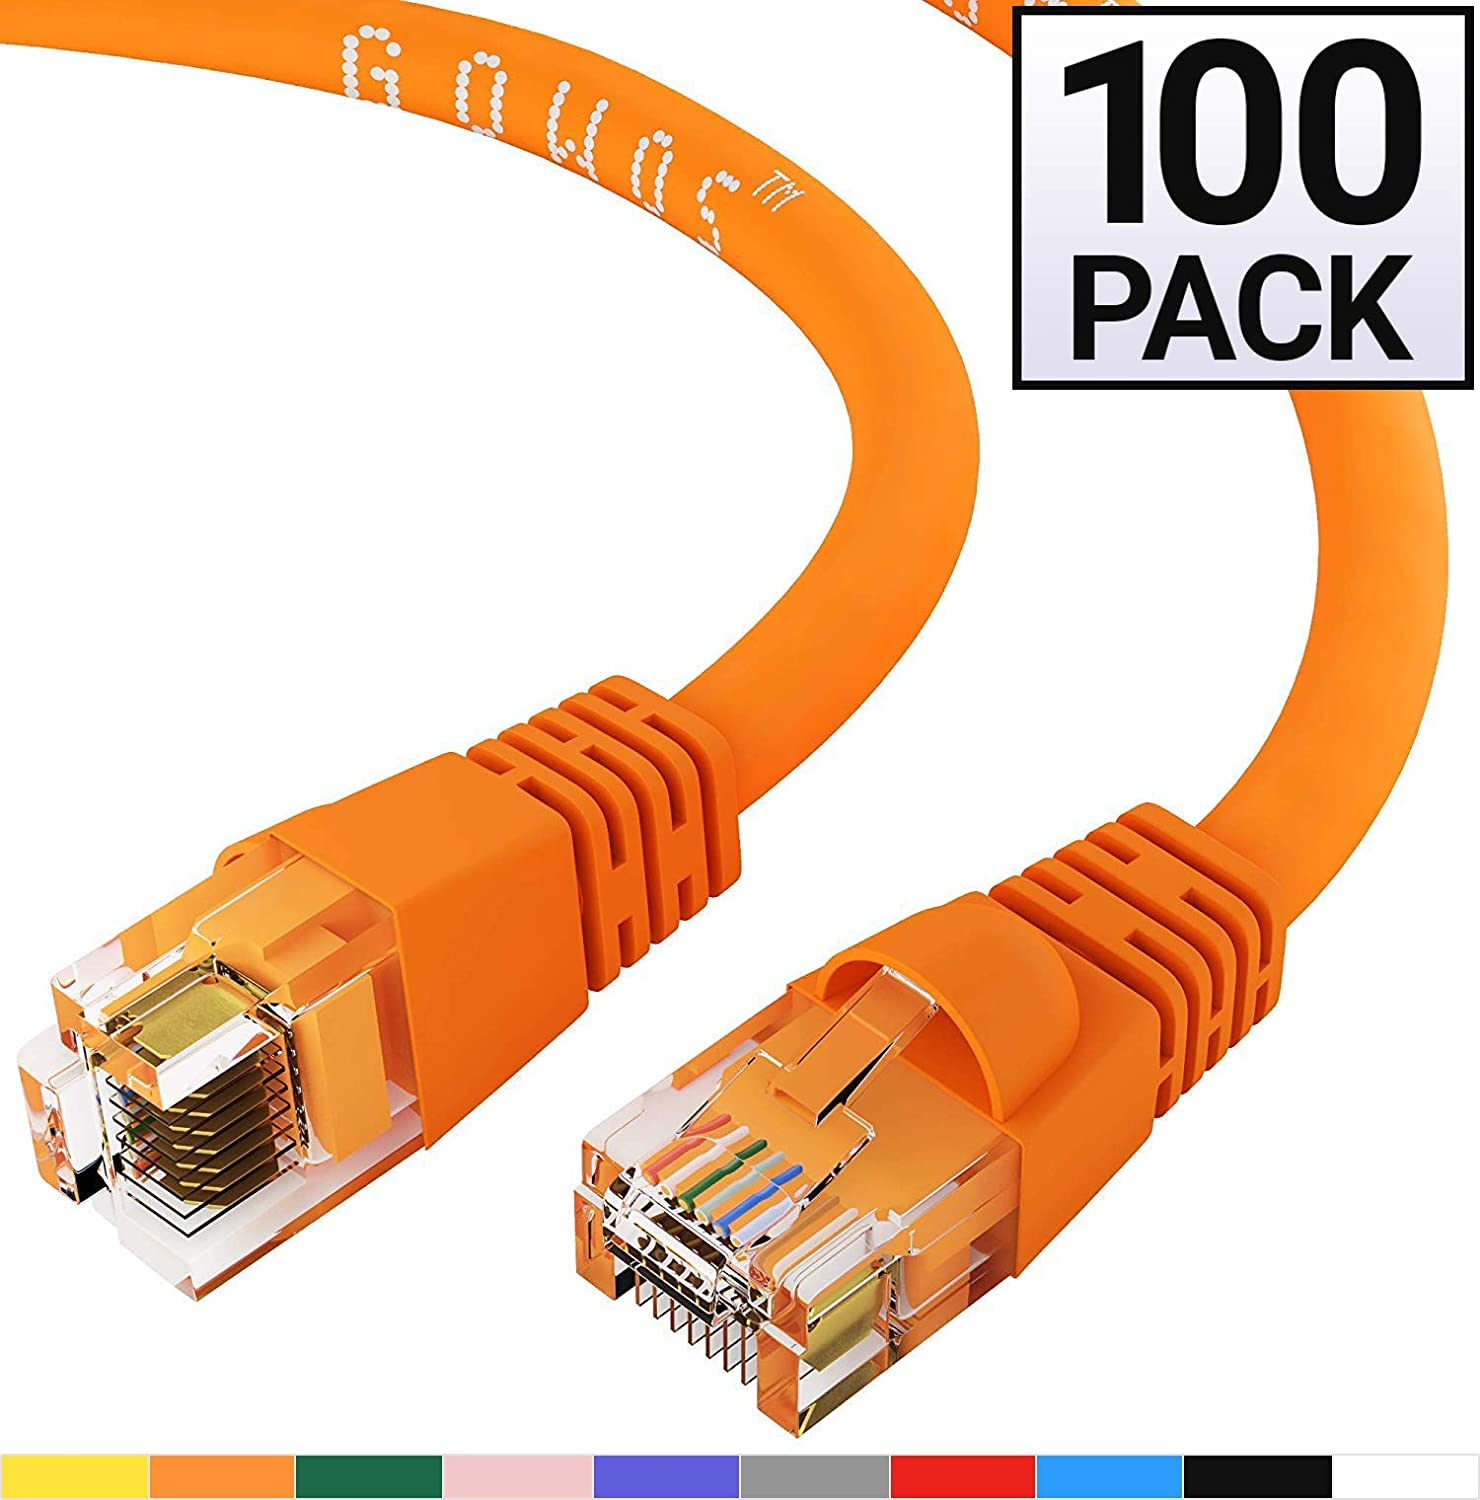 GOWOS Cat5e Ethernet Cable 1Gigabit//Sec High Speed LAN Internet//Patch Cable 100-Pack - 12 Feet 350MHz Orange 24AWG Network Cable with Gold Plated RJ45 Snagless//Molded//Booted Connector